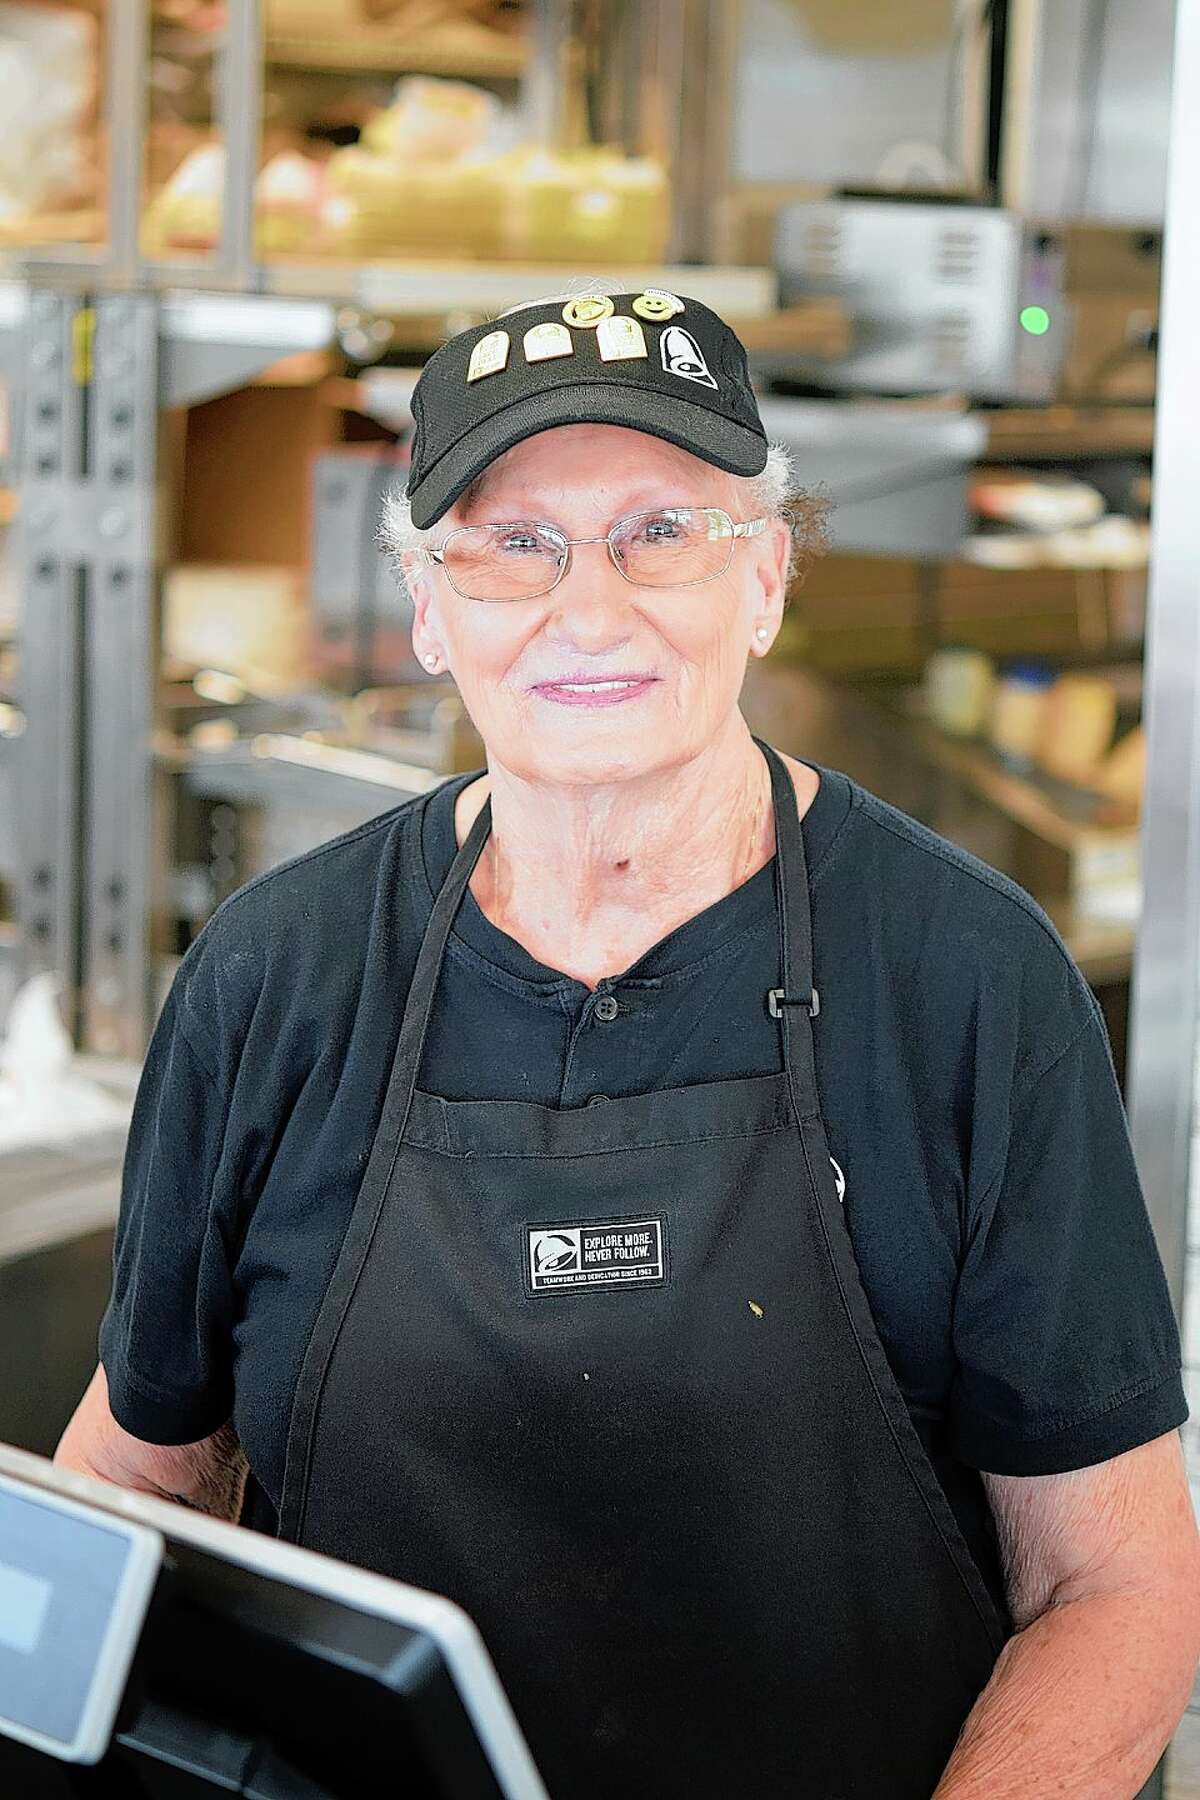 Pat Mast works the breakfast and lunch shift at the Jacksonville Taco Bell.